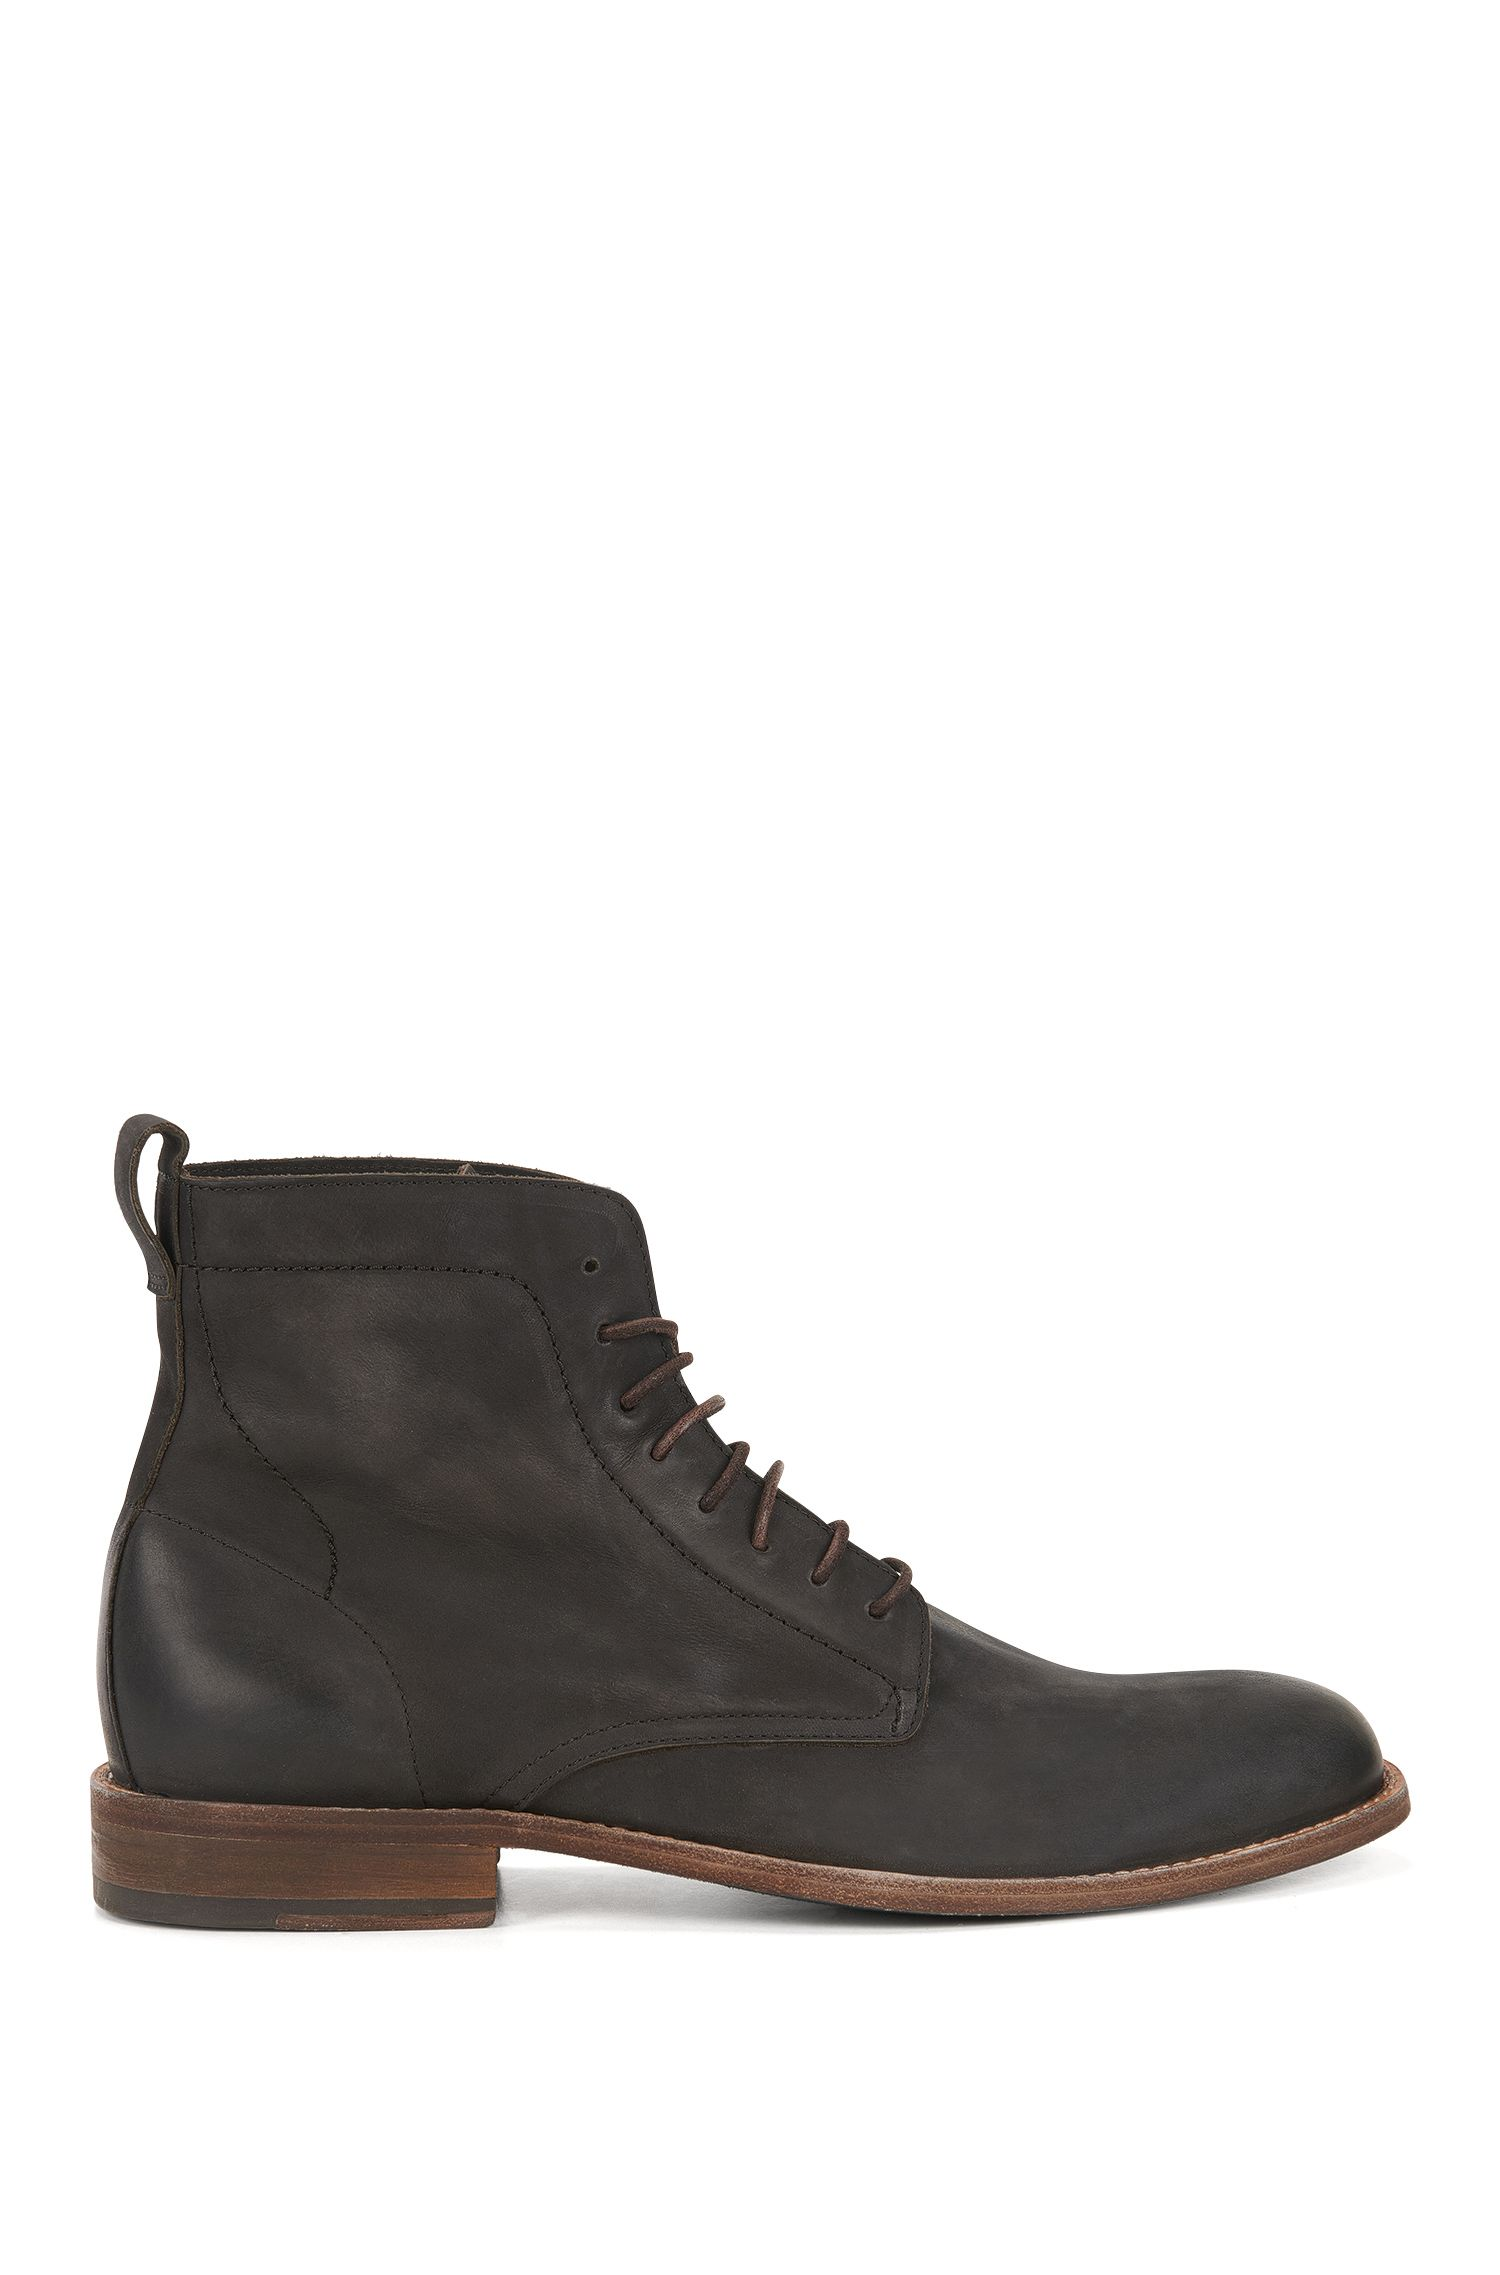 Lace-up boots in nubuck calf leather